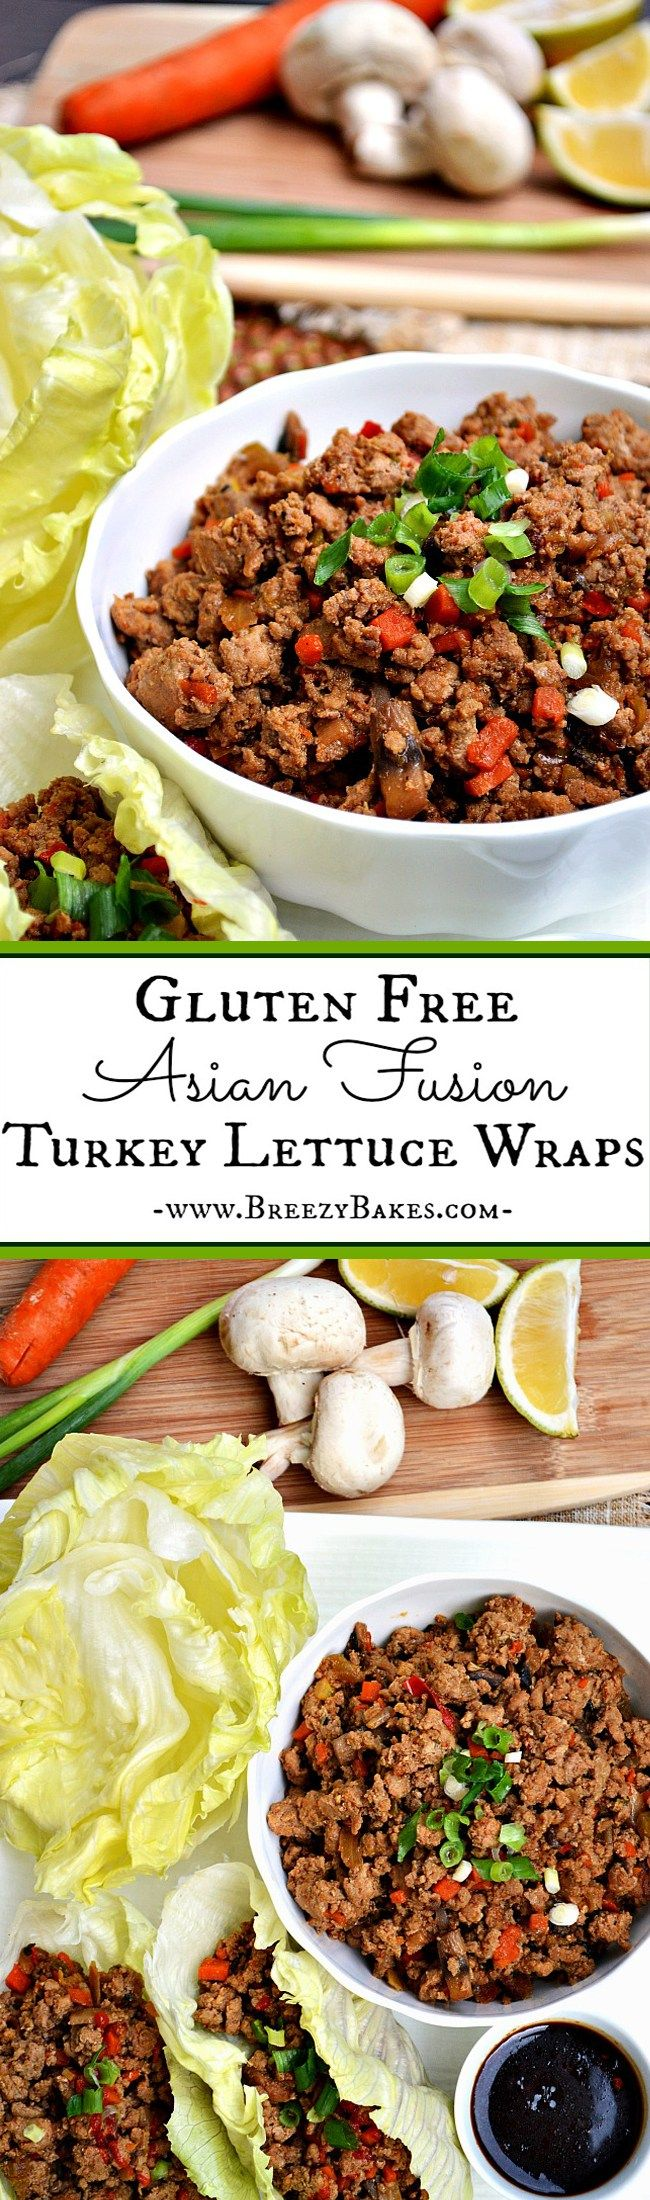 For an easy Asian fusion dinner or appetizer, throw together these simply easy and simply tasty Gluten Free Turkey Lettuce Wraps.